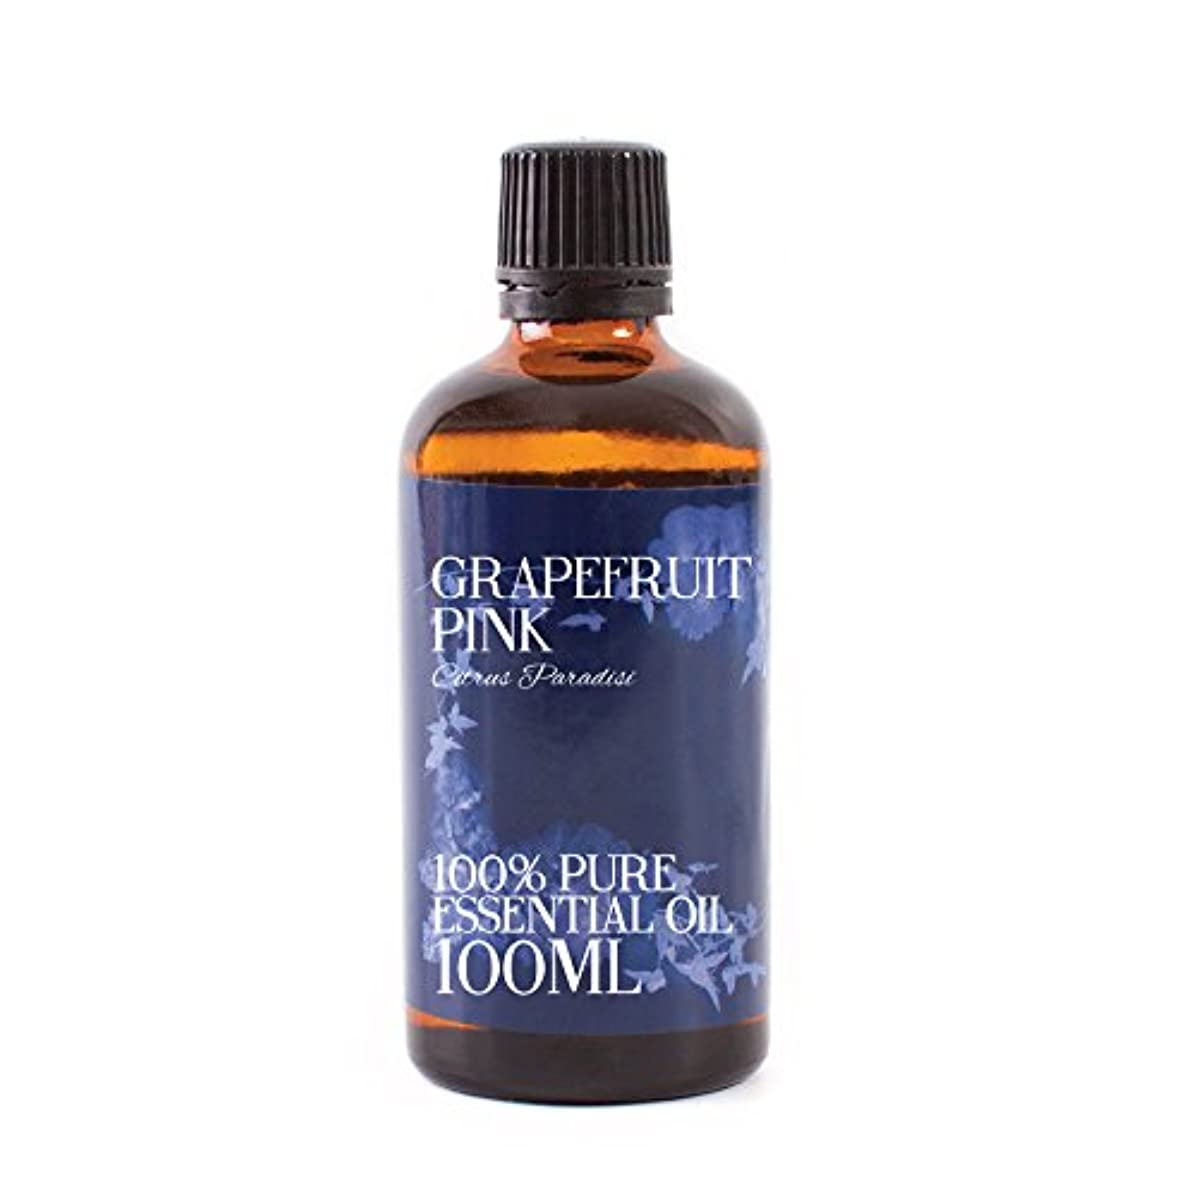 Mystic Moments | Grapefruit Pink Essential Oil - 100ml - 100% Pure